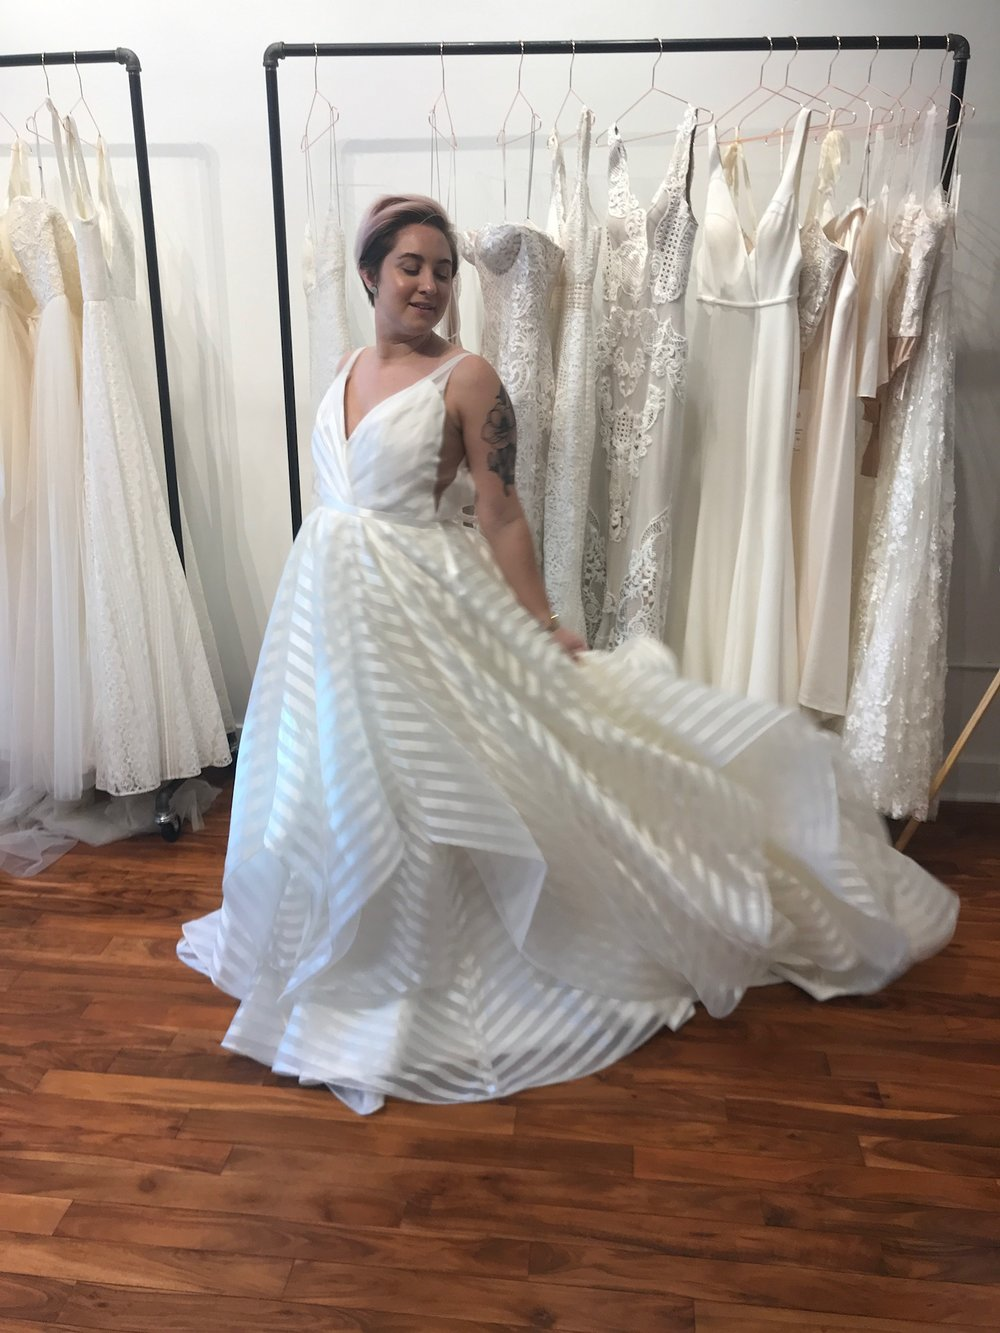 Hayley paige wedding dresses are in the house at ab seattleab hayley paiges feminine flirty and flattering wedding gowns have our hearts racing and we think yours will too as seen on her popular original series on junglespirit Choice Image